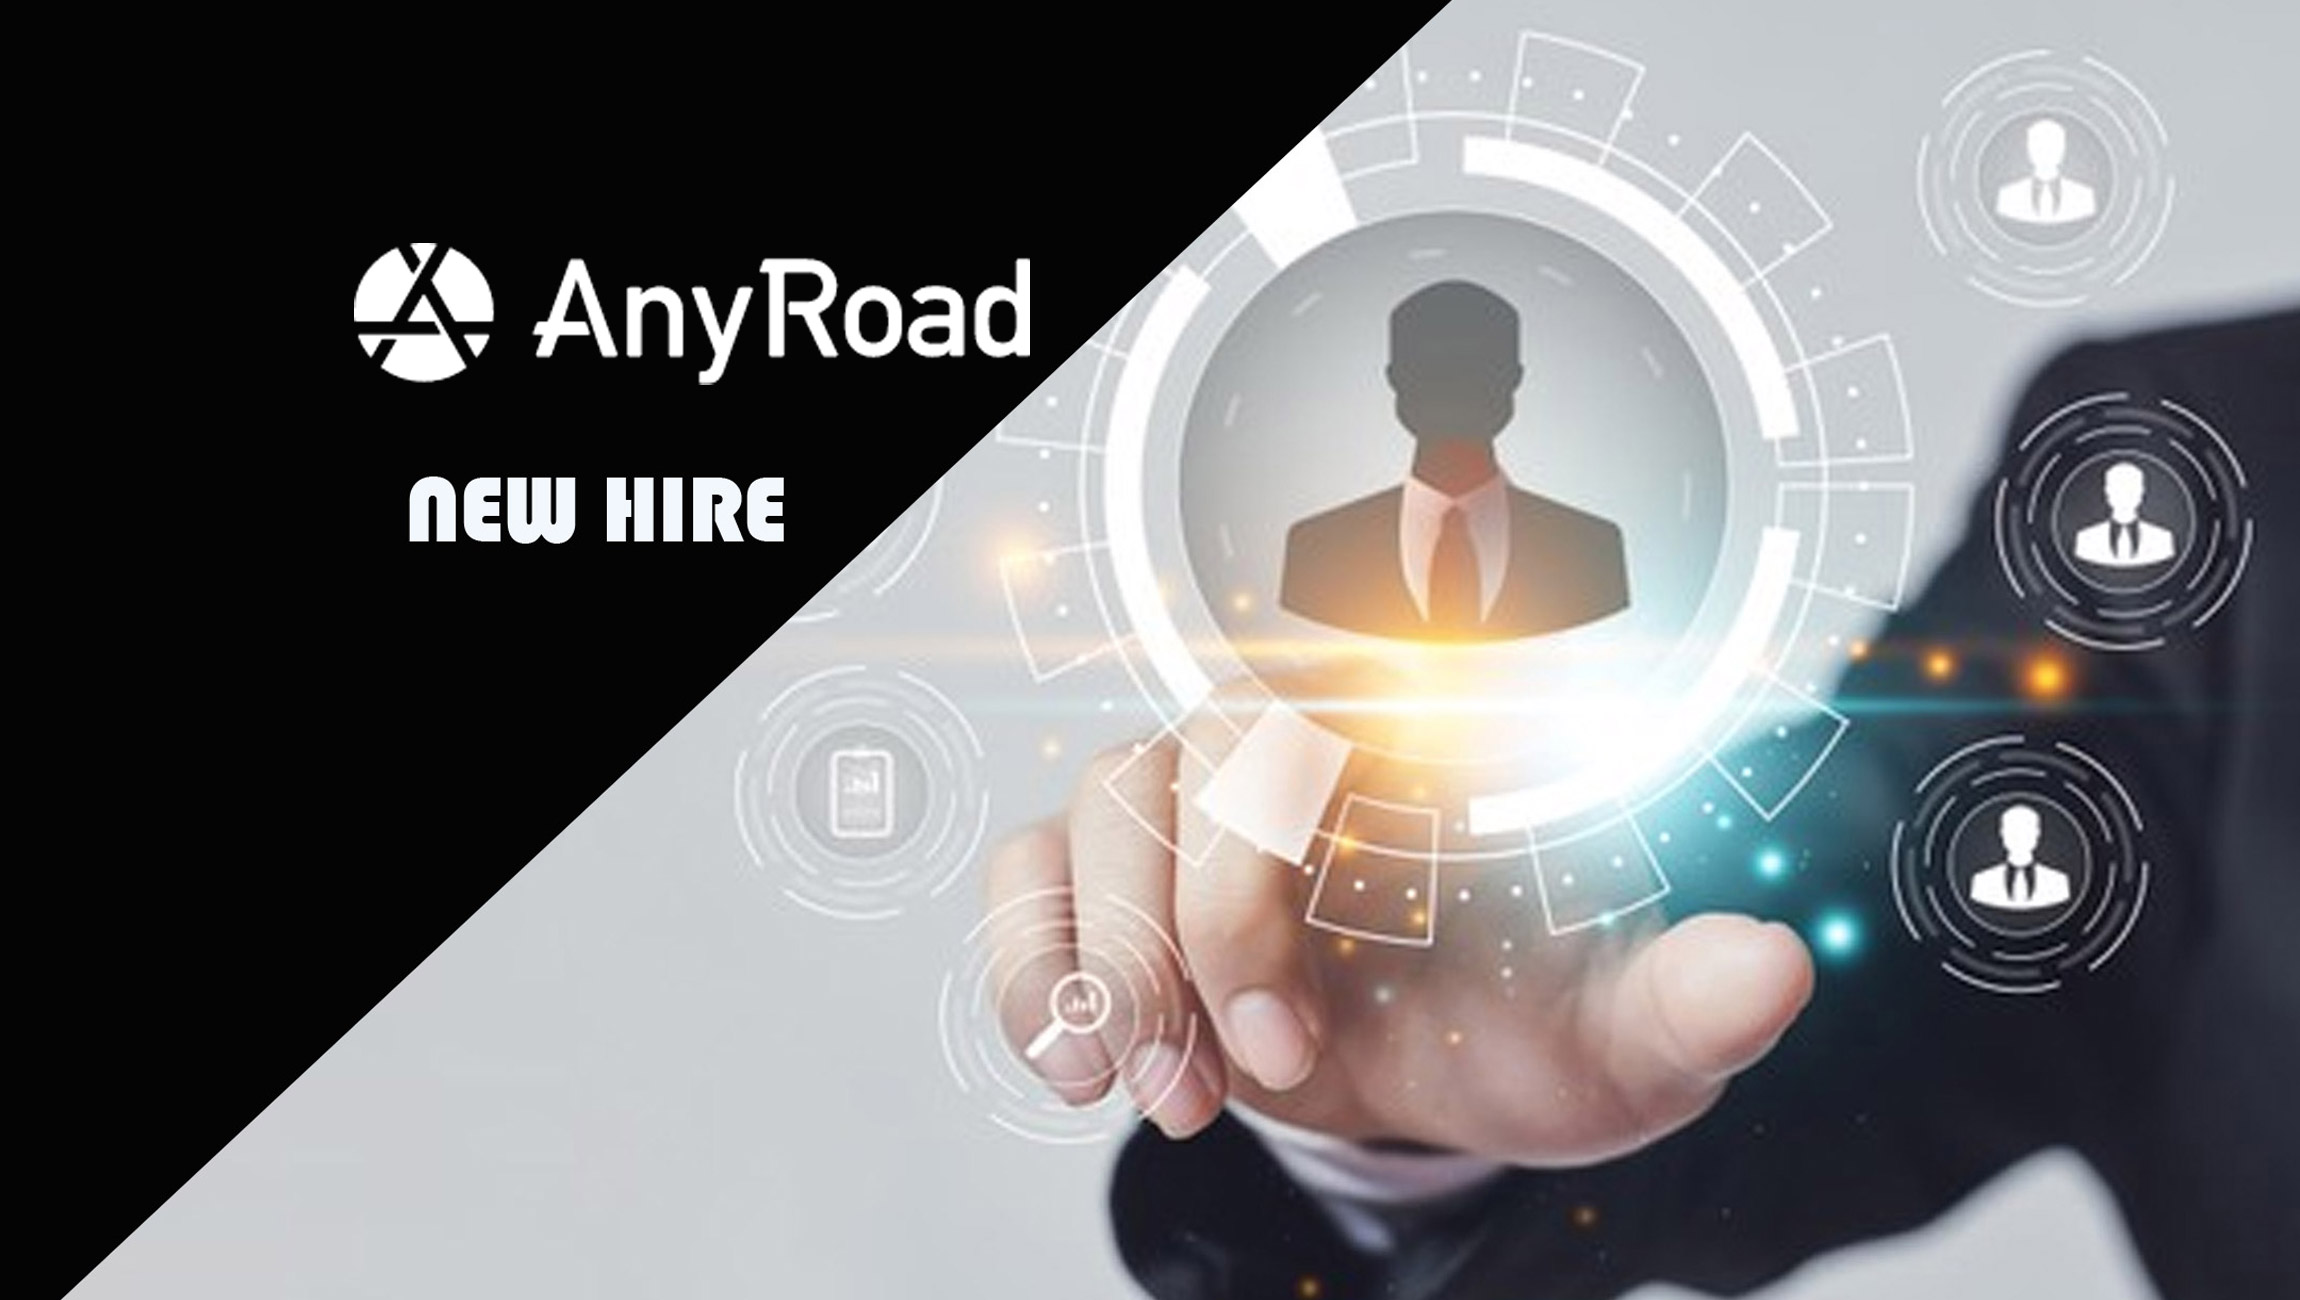 AnyRoad Appoints Prominent Experts to New Advisory Board